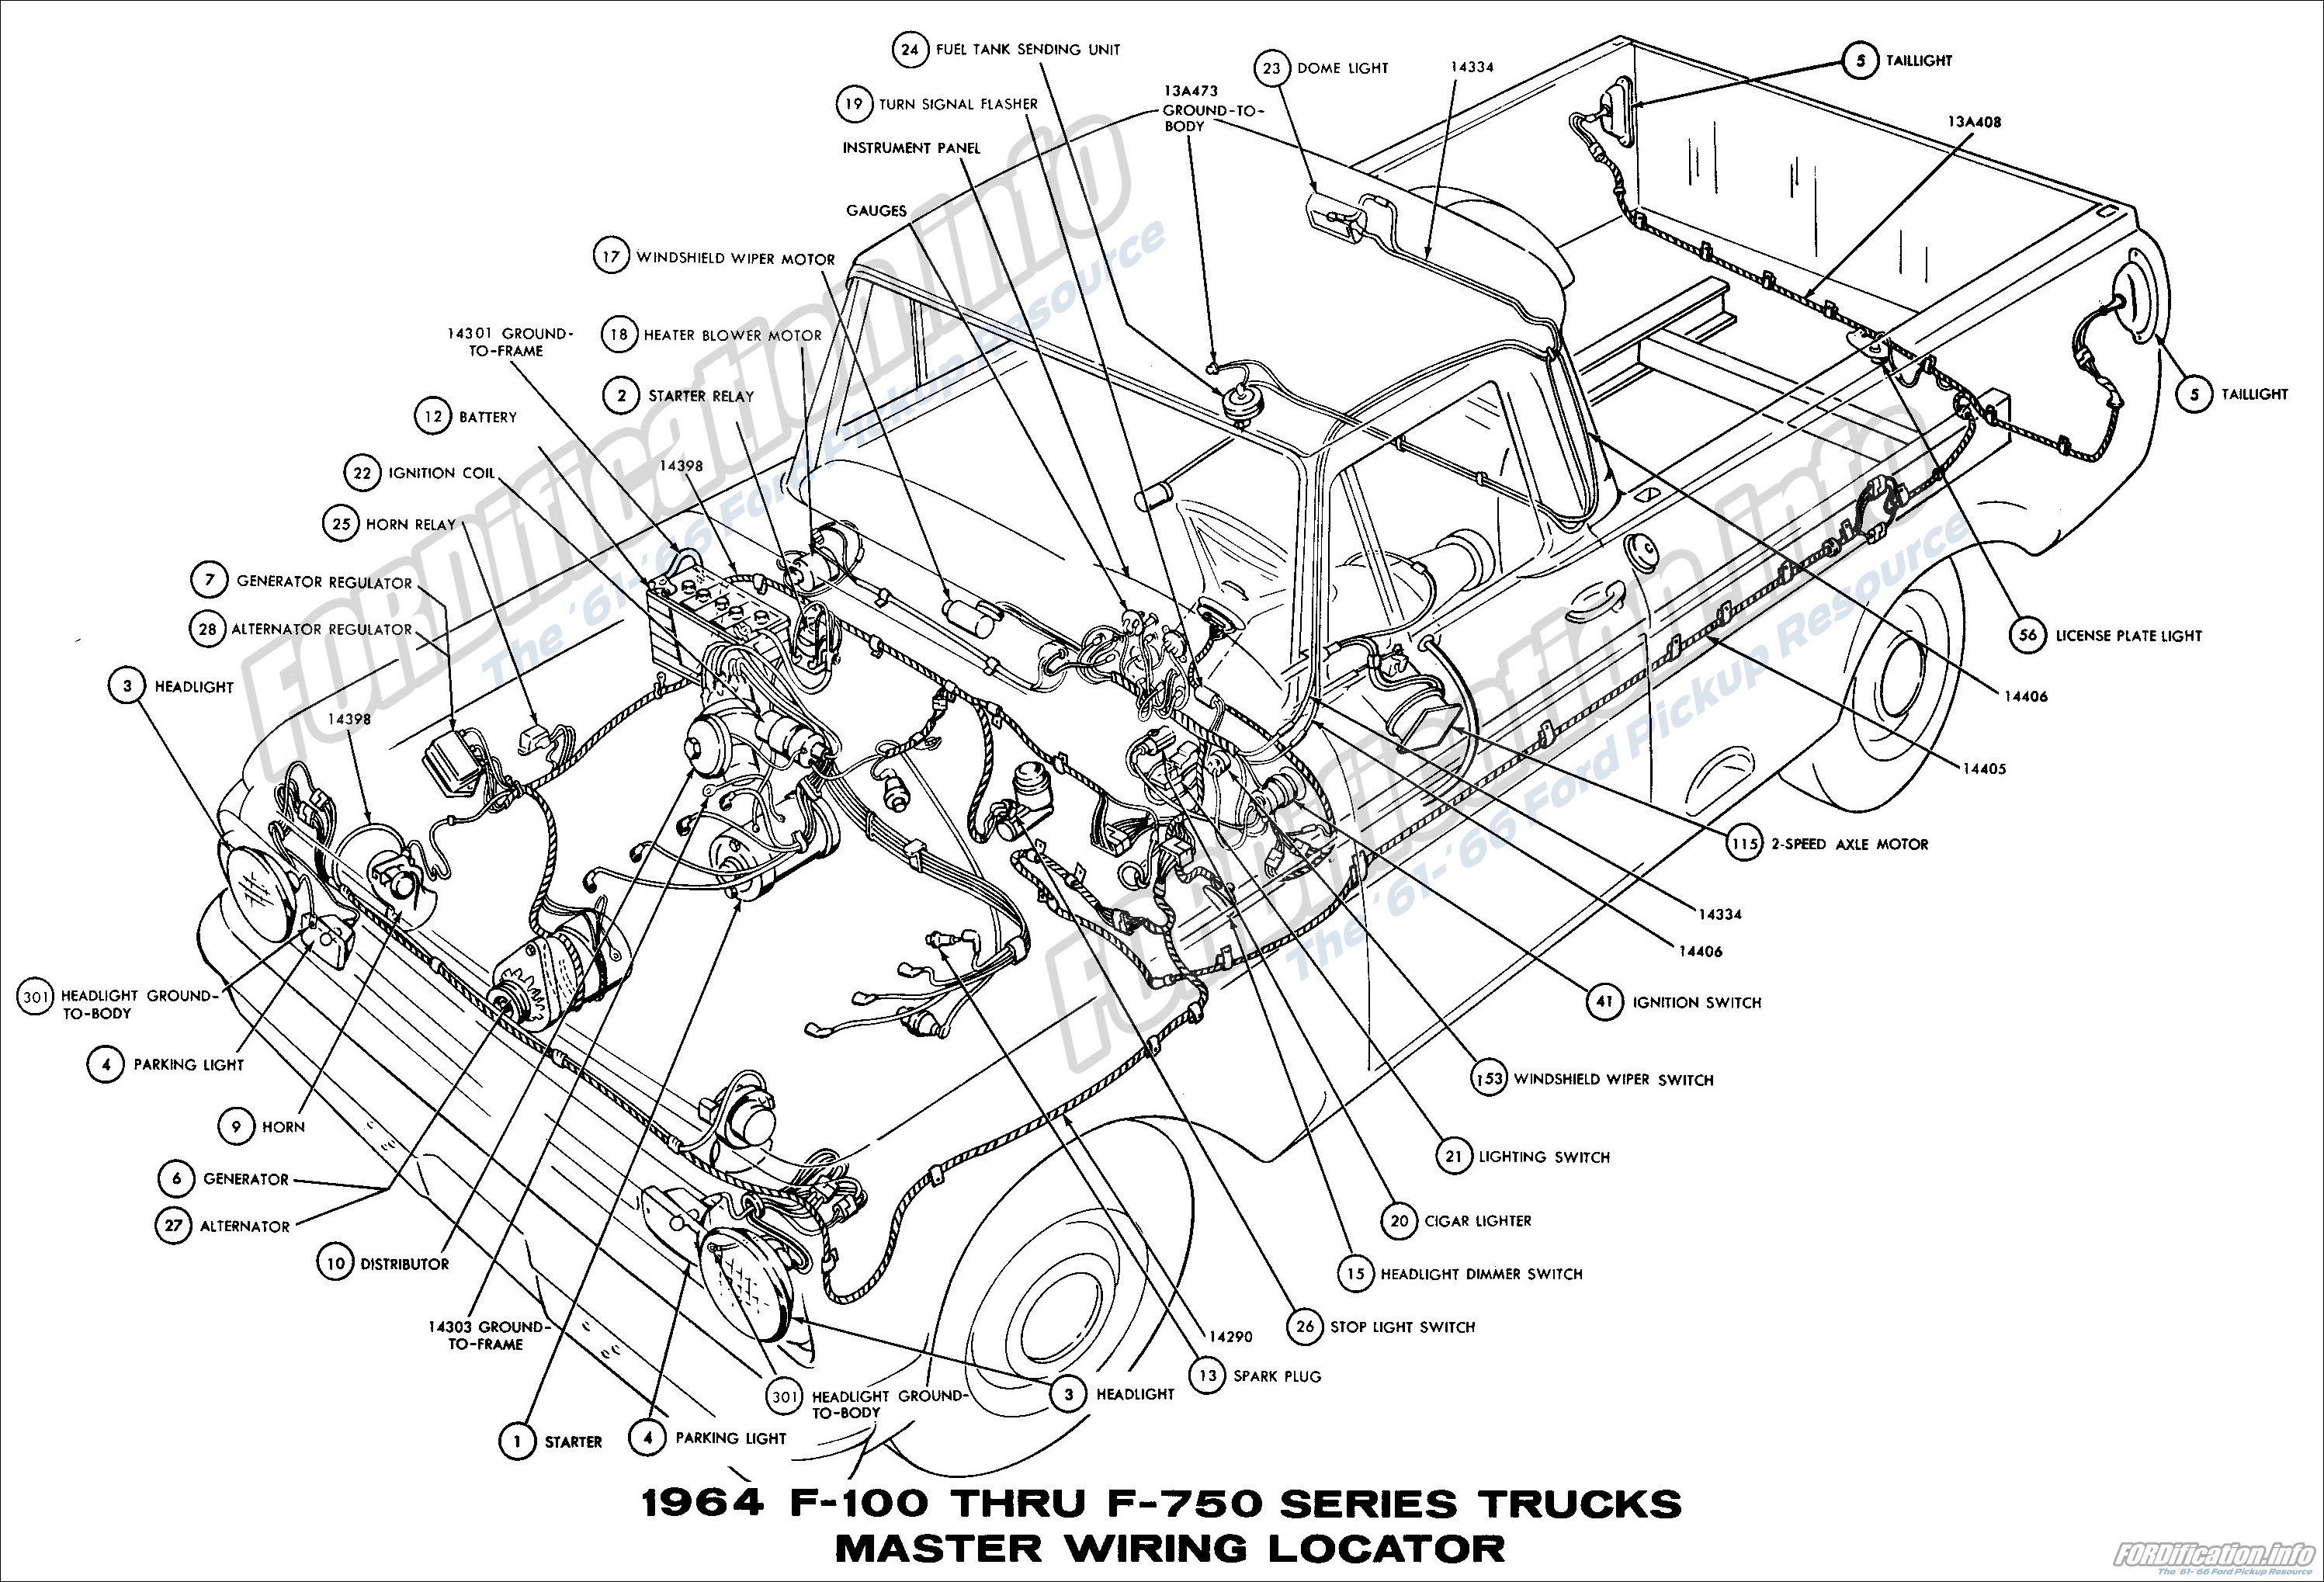 1964_01_gif 1964 ford truck wiring diagrams fordification info the '61 '66 f100 wiring diagram at virtualis.co